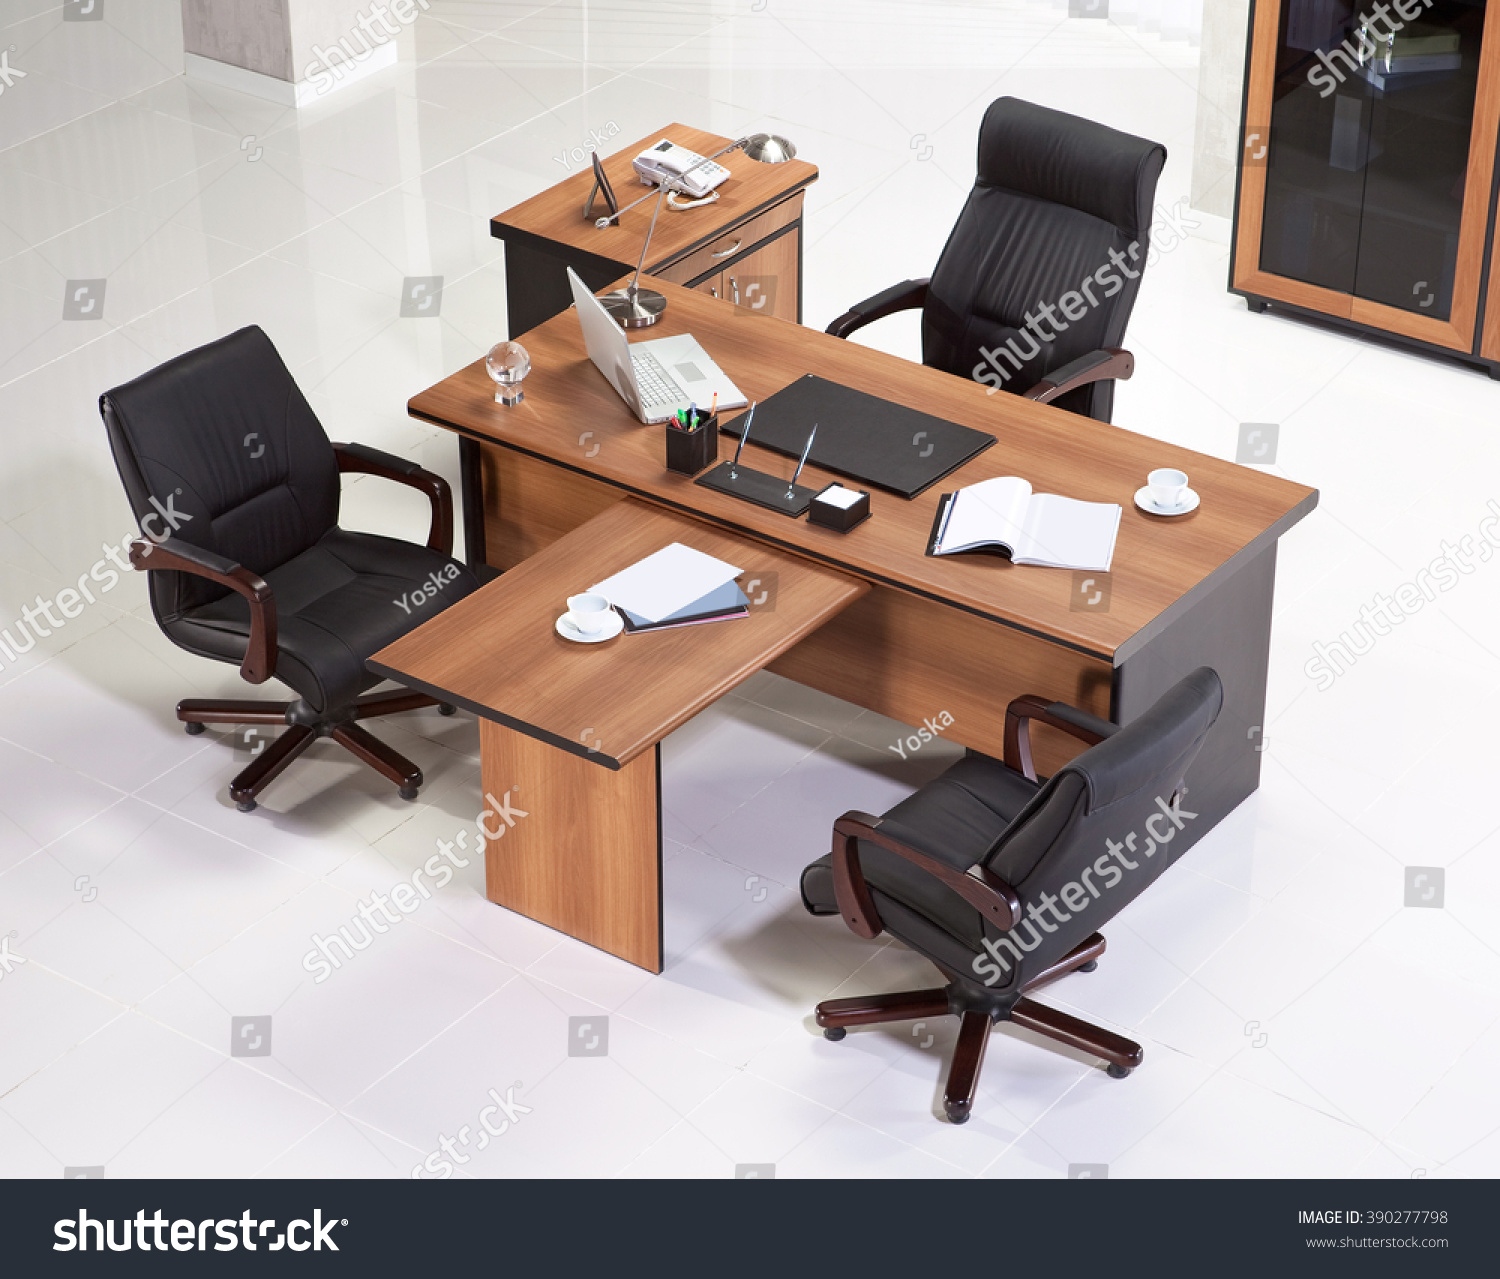 Office furniture top view - Office Furniture On A White Background Top View